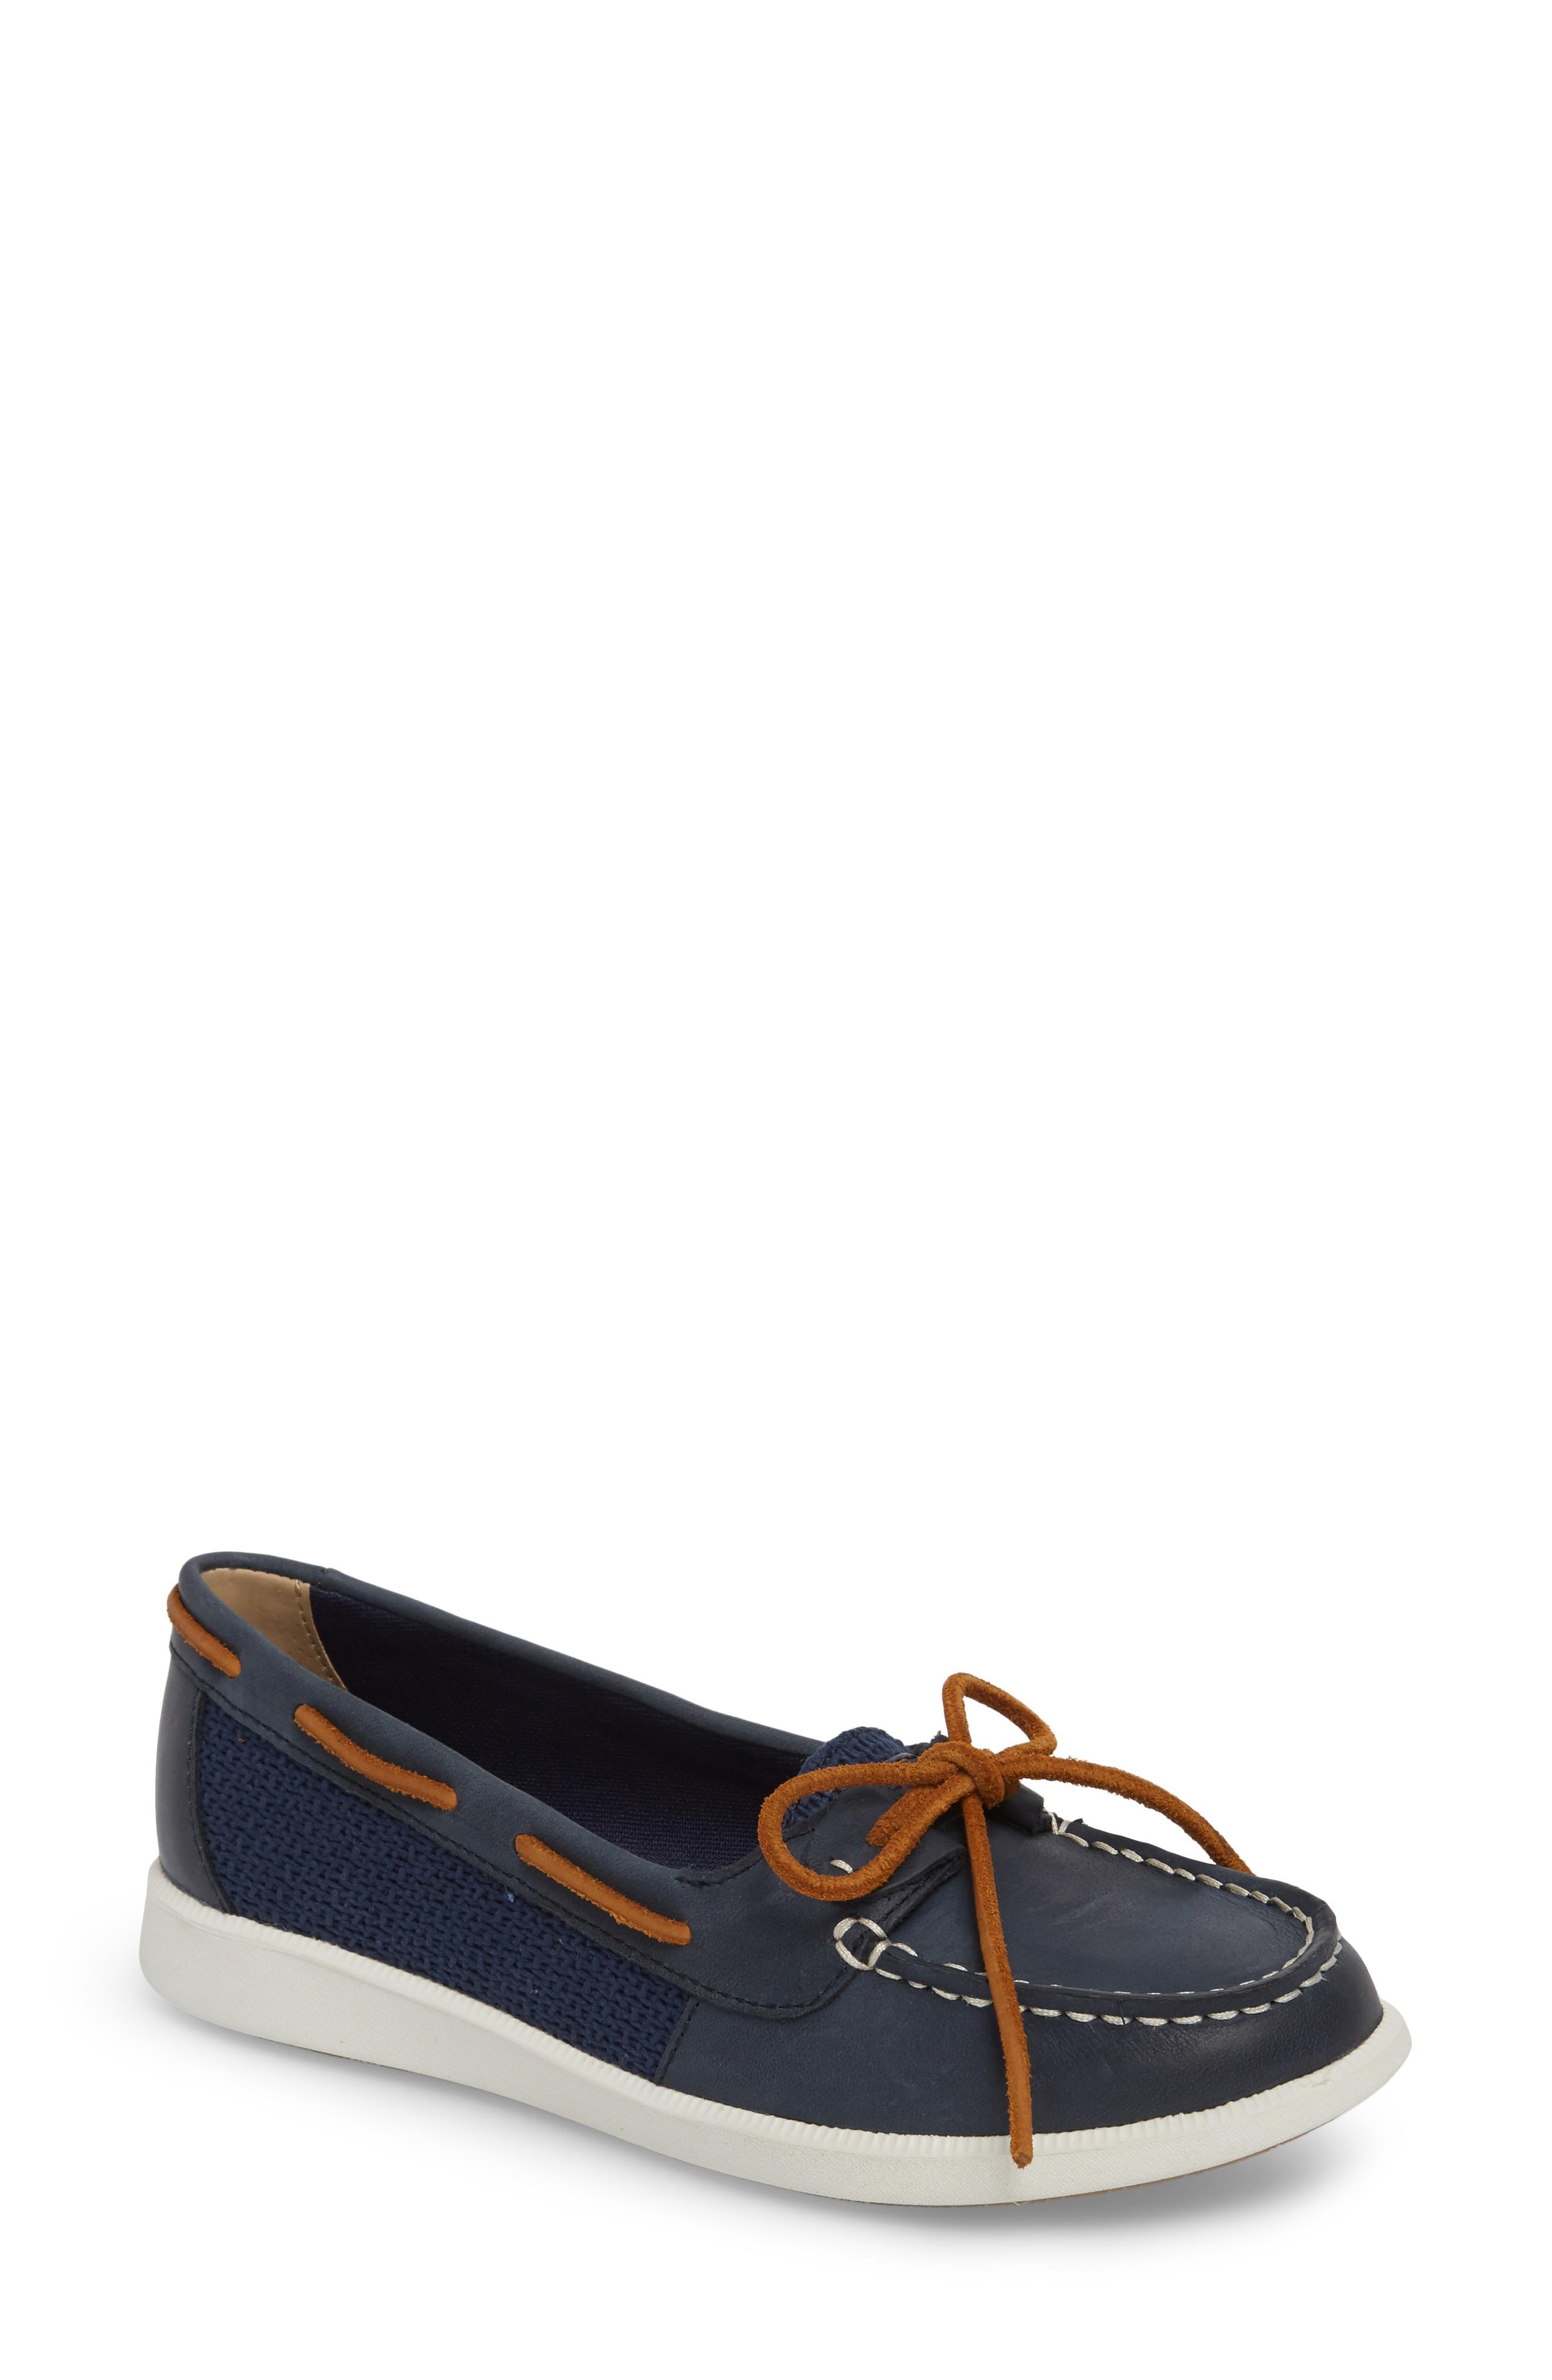 Sperry Oasis Boat Shoe In Navy Canvas